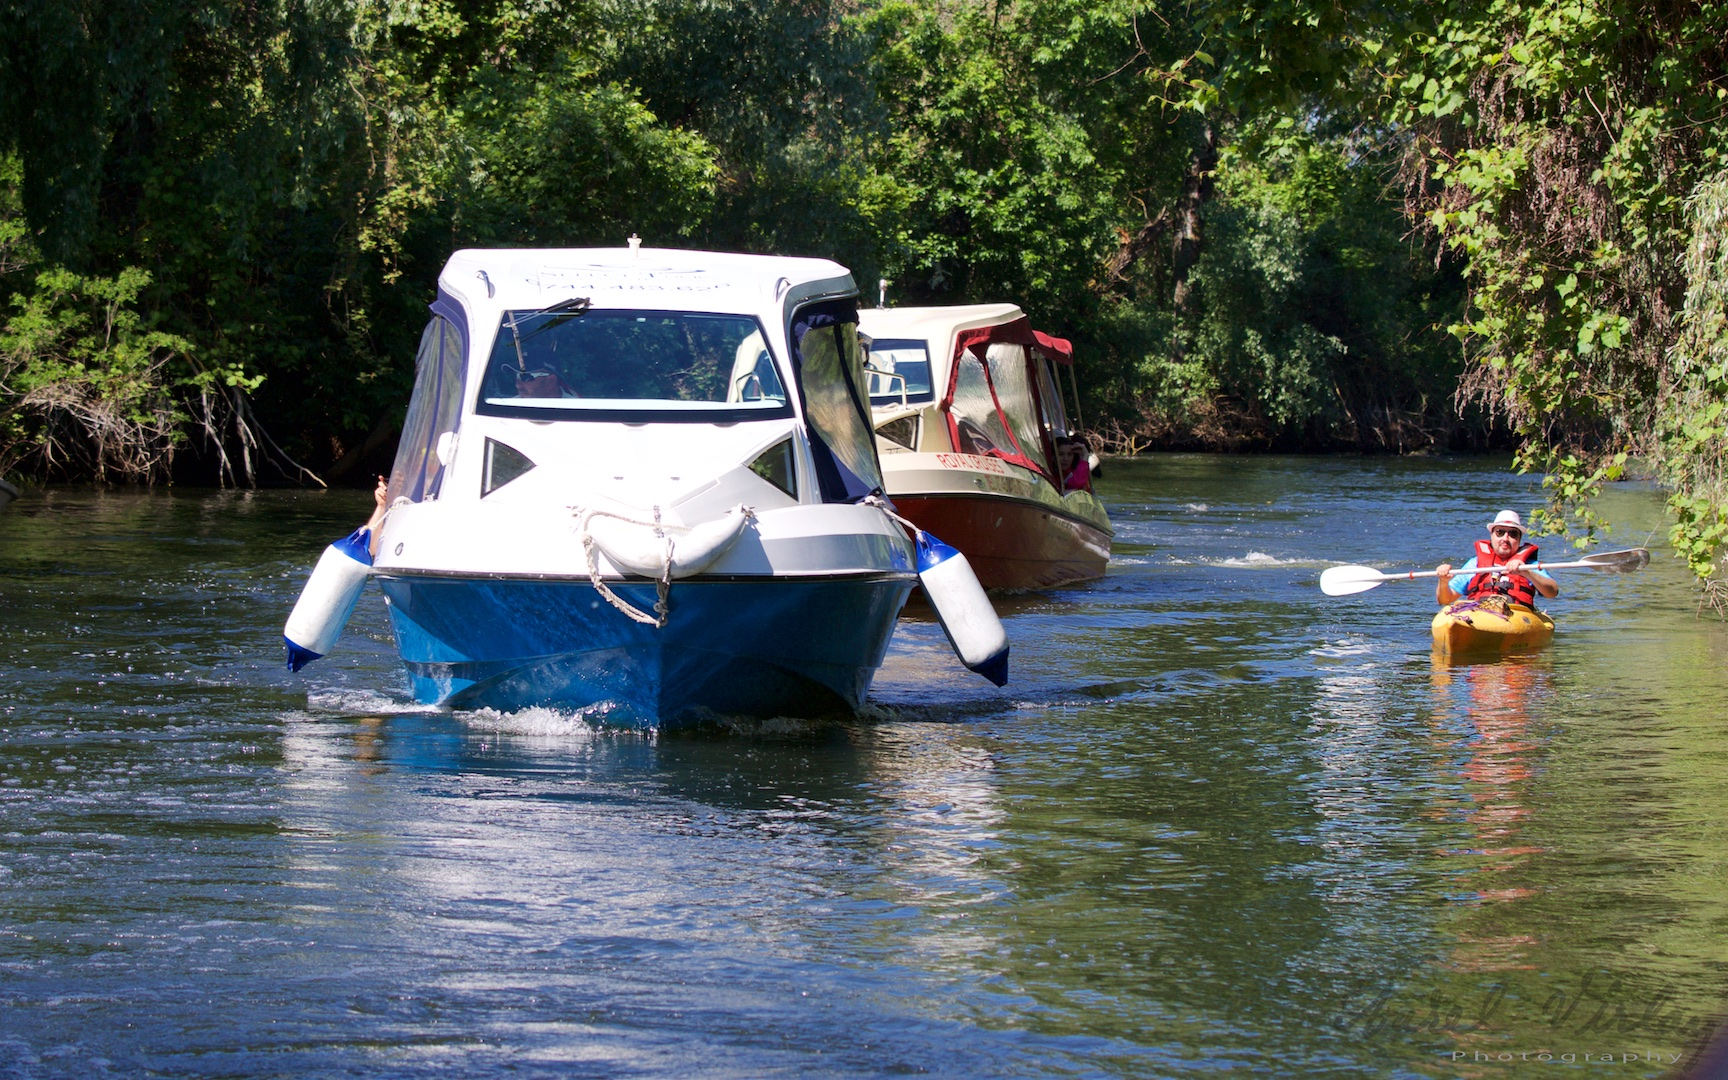 Two different kind of Danube Delta guided tours, kind of *motorways versus discovery*.